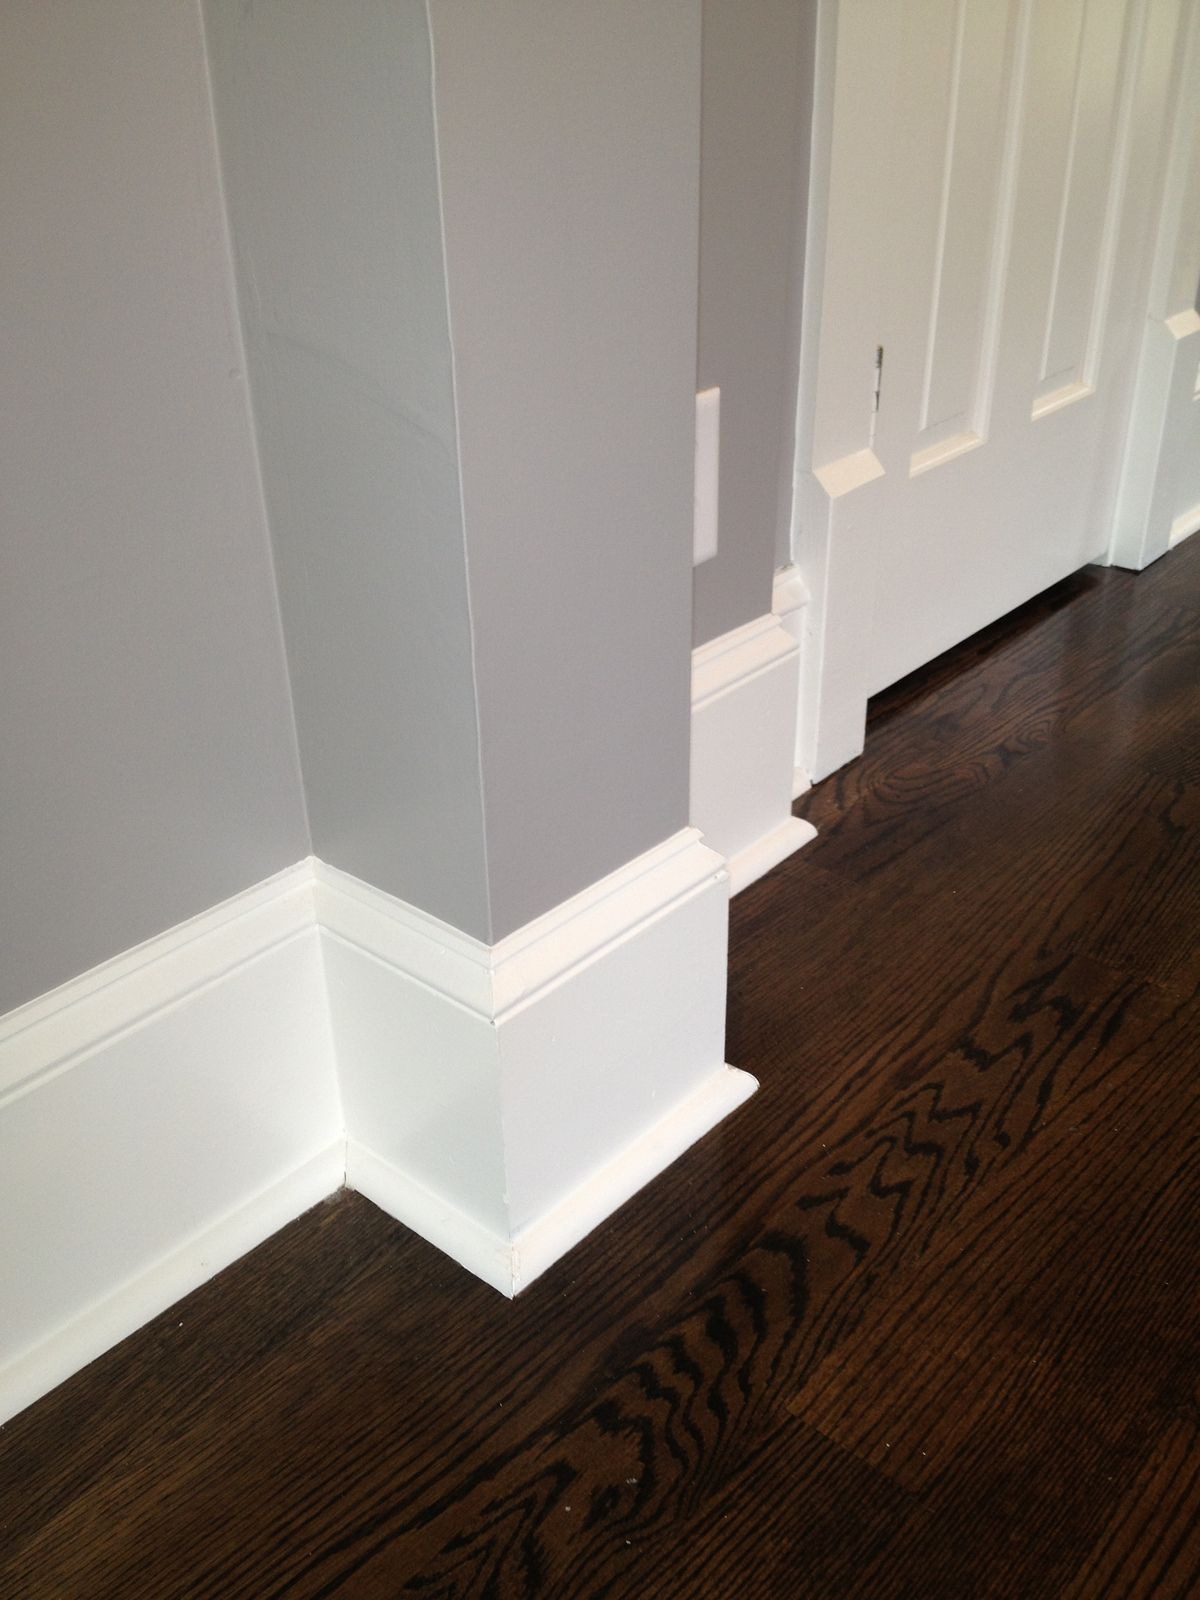 Historic Trim Details Our Baseboards Are Actual Wood Not Speedboard Or Pressboard They Include An 8 Baseboard A Baseboard Styles House Trim Baseboards